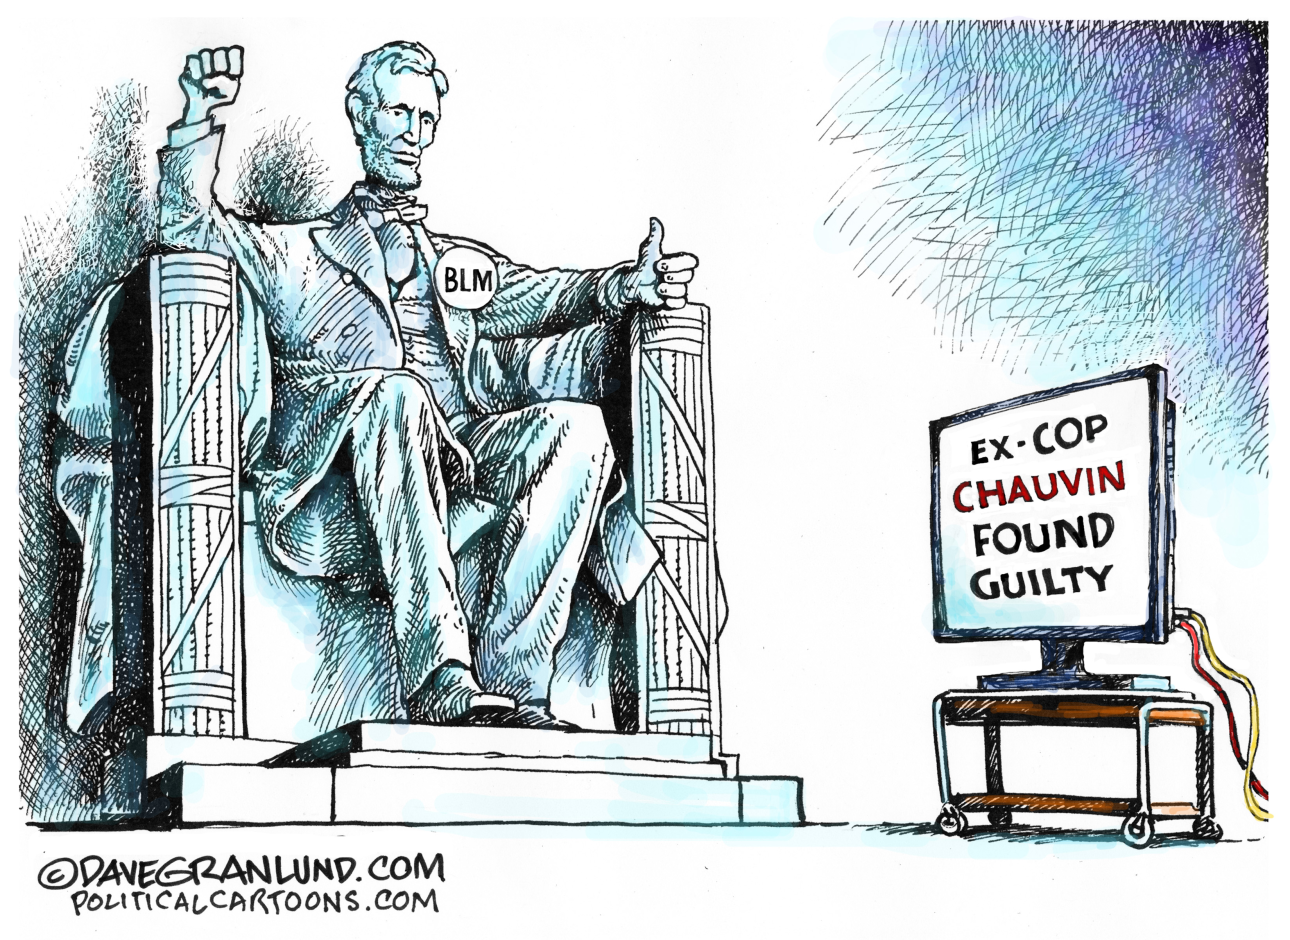 BLM, JURY, POLICE, COP, OFFICER, KNEE, BLACK, COLOR, EXCESSIVE FORCE, CHOKE, KILL, VERDICT, EQUALITY, JUSTICE